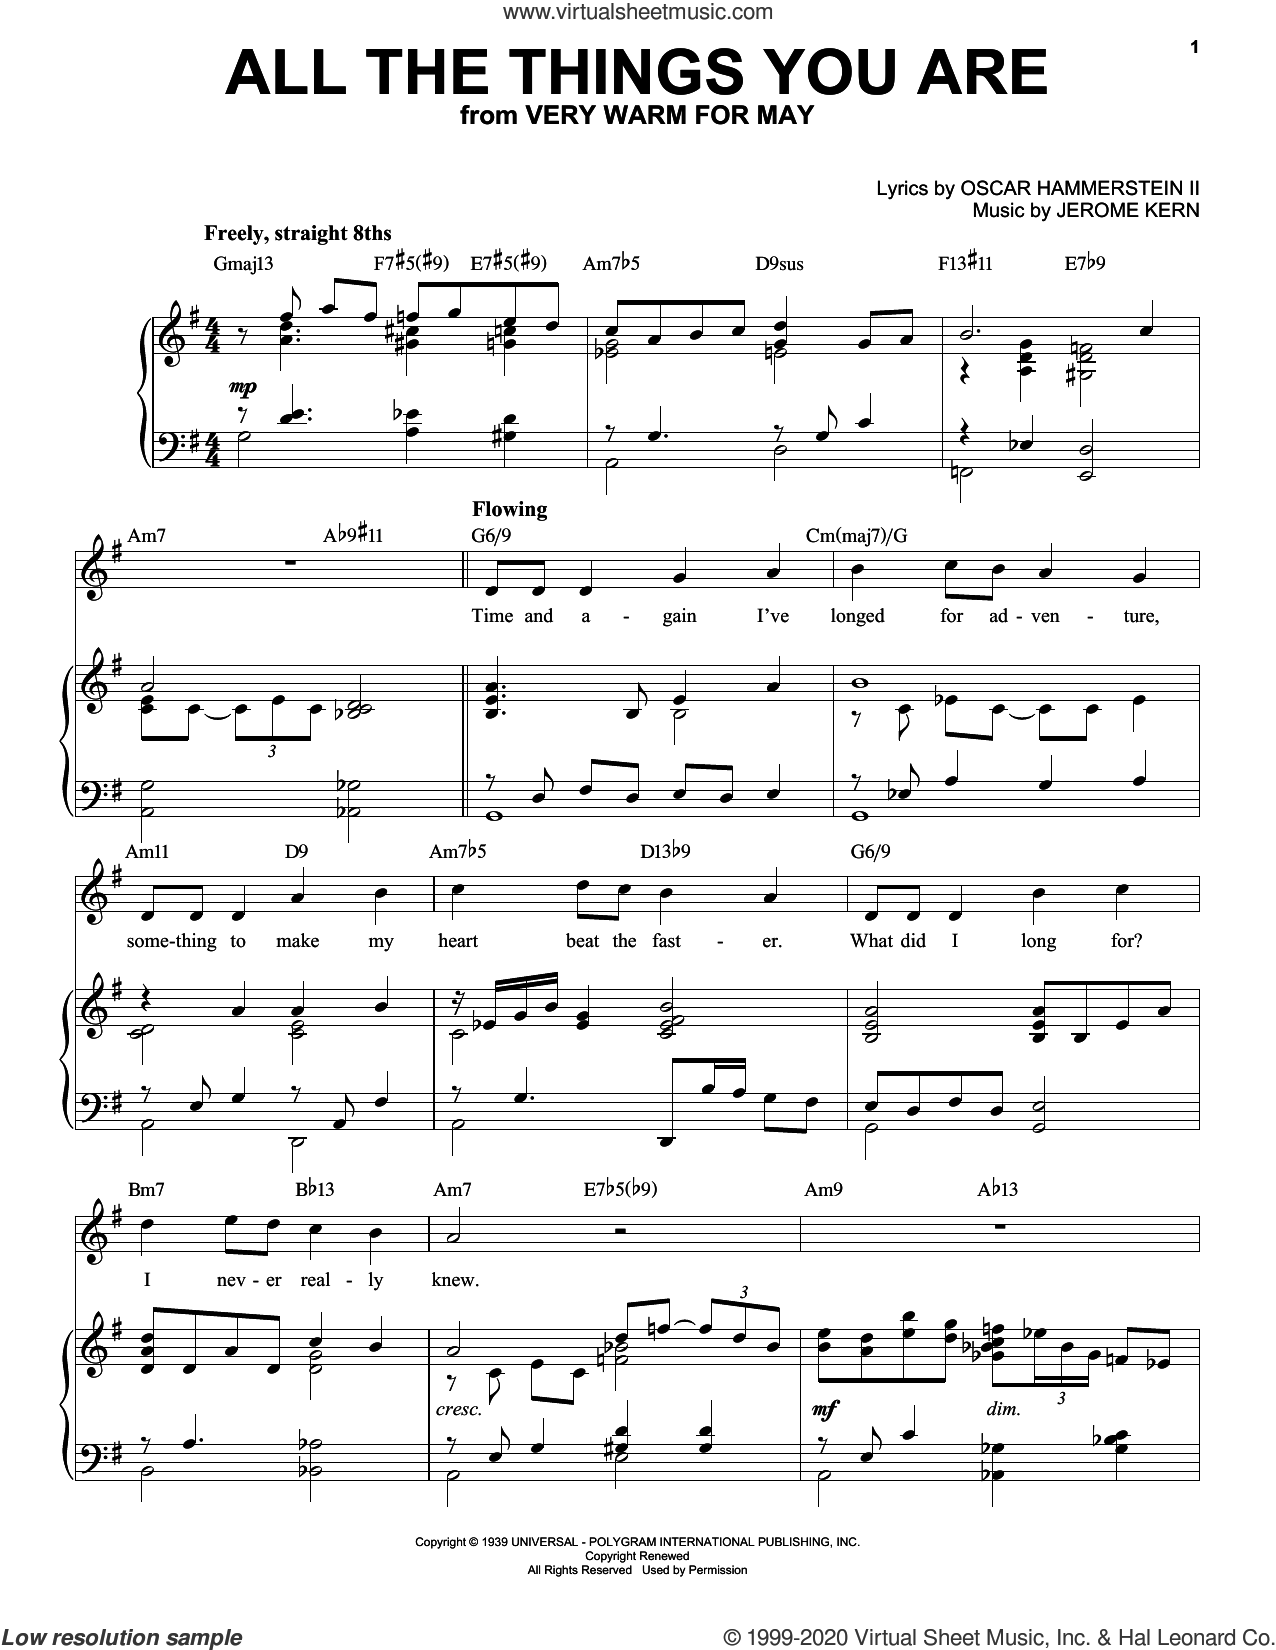 All The Things You Are [Jazz version] (arr. Brent Edstrom) sheet music for voice and piano (High Voice) by Oscar II Hammerstein, Brent Edstrom and Jerome Kern, intermediate skill level